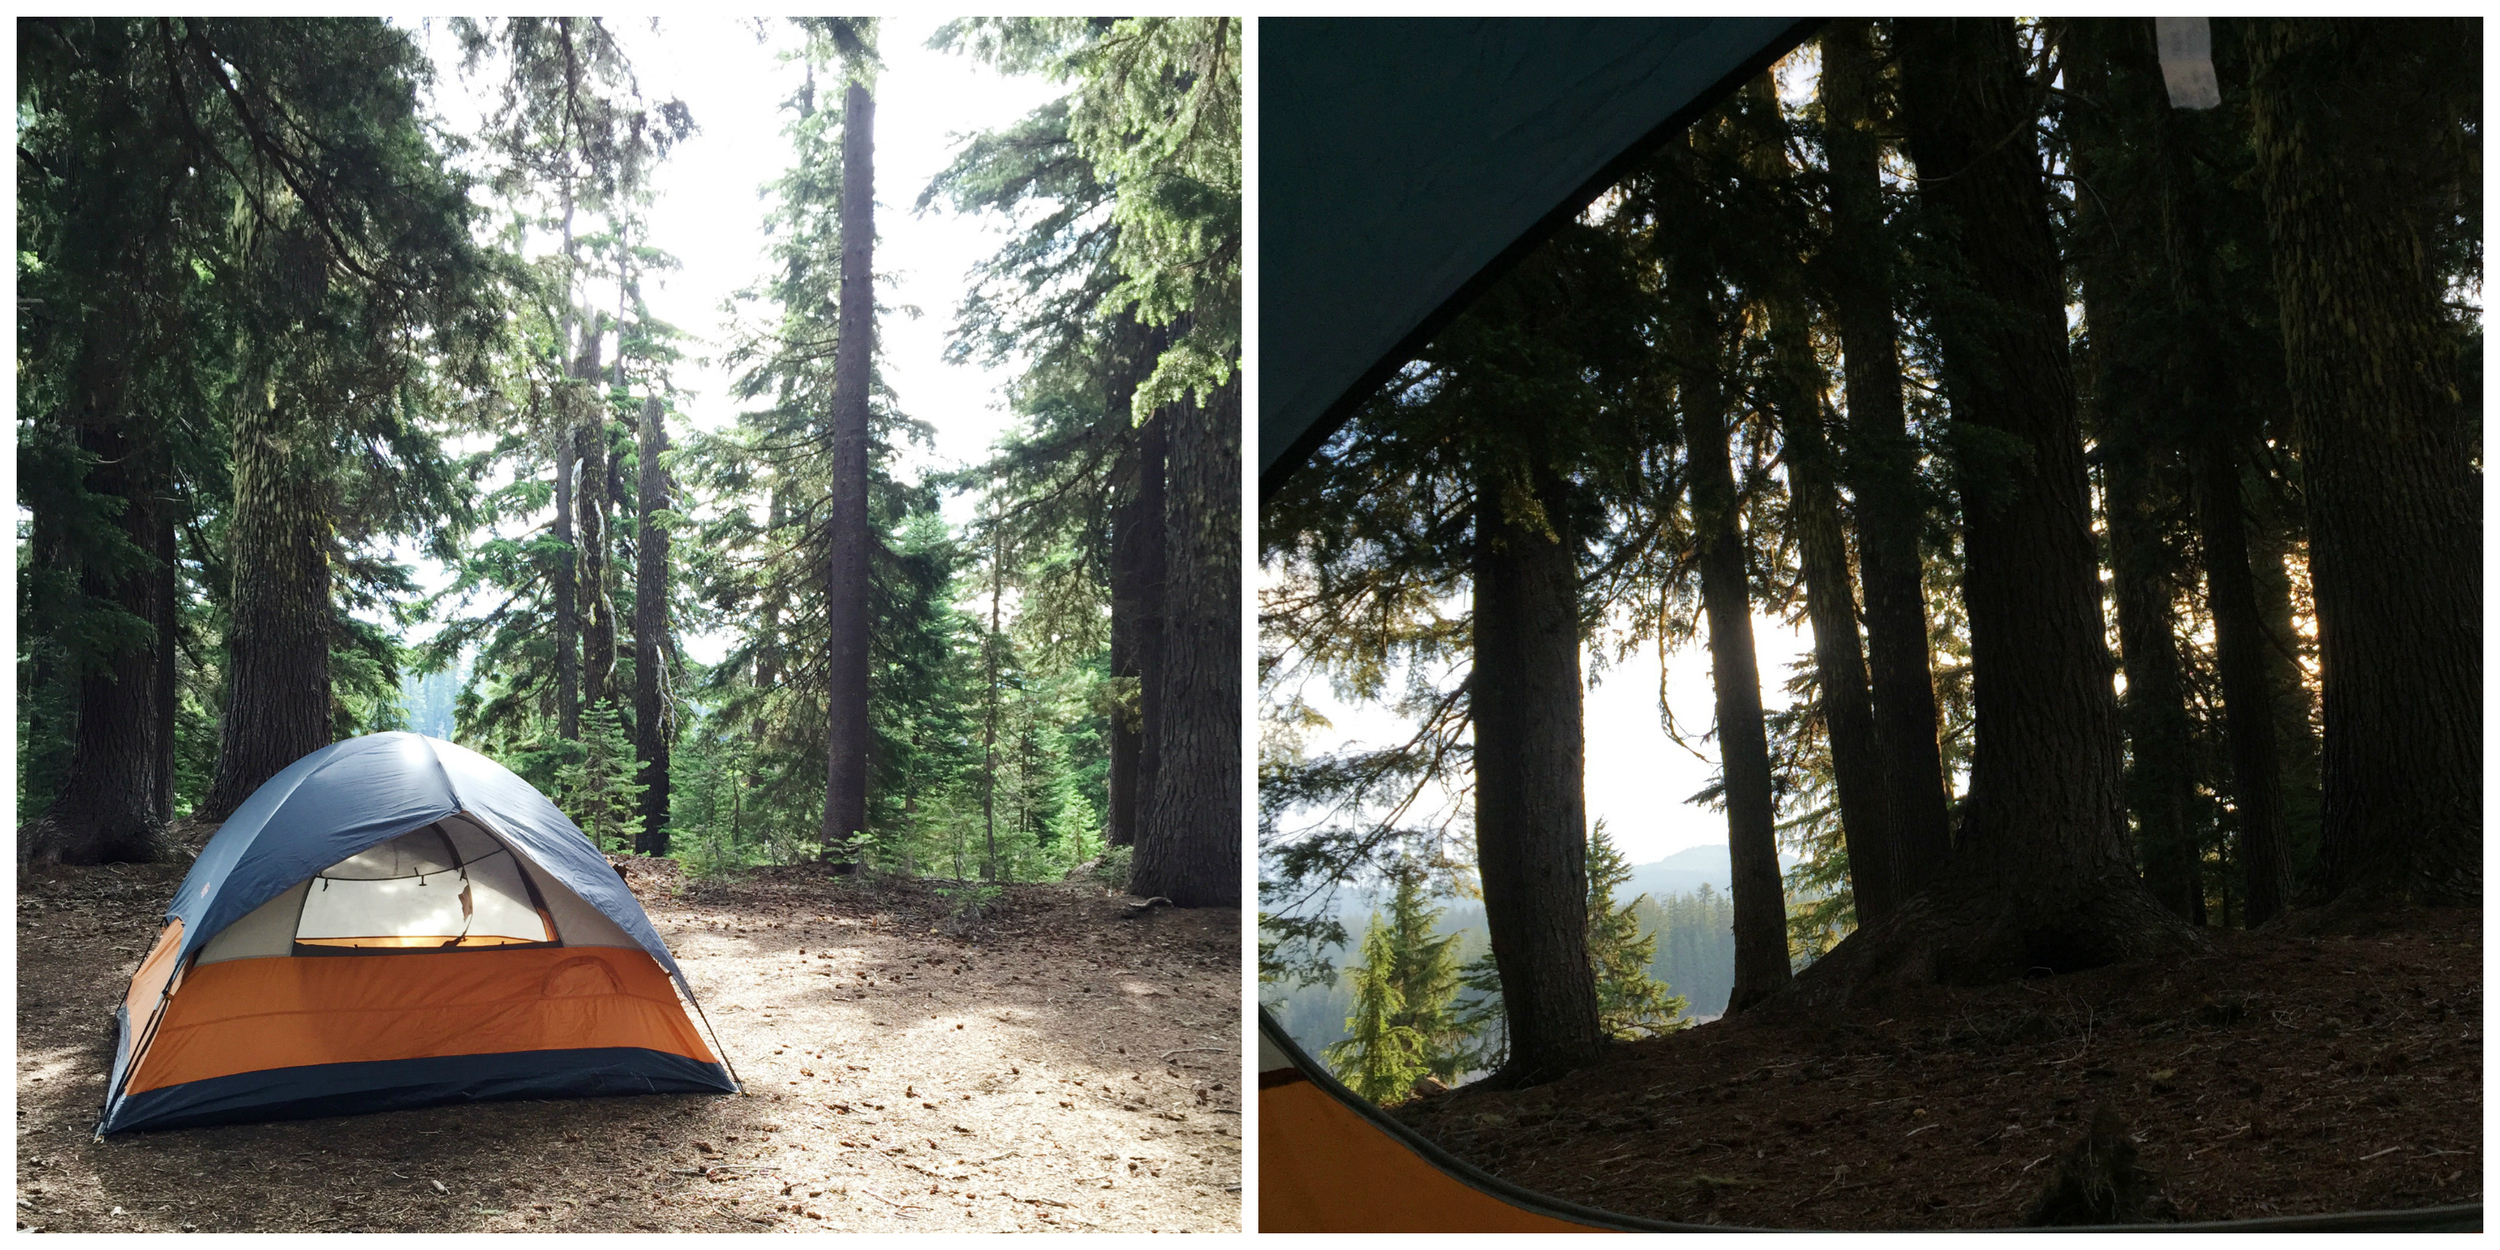 our serene tent site and morning view